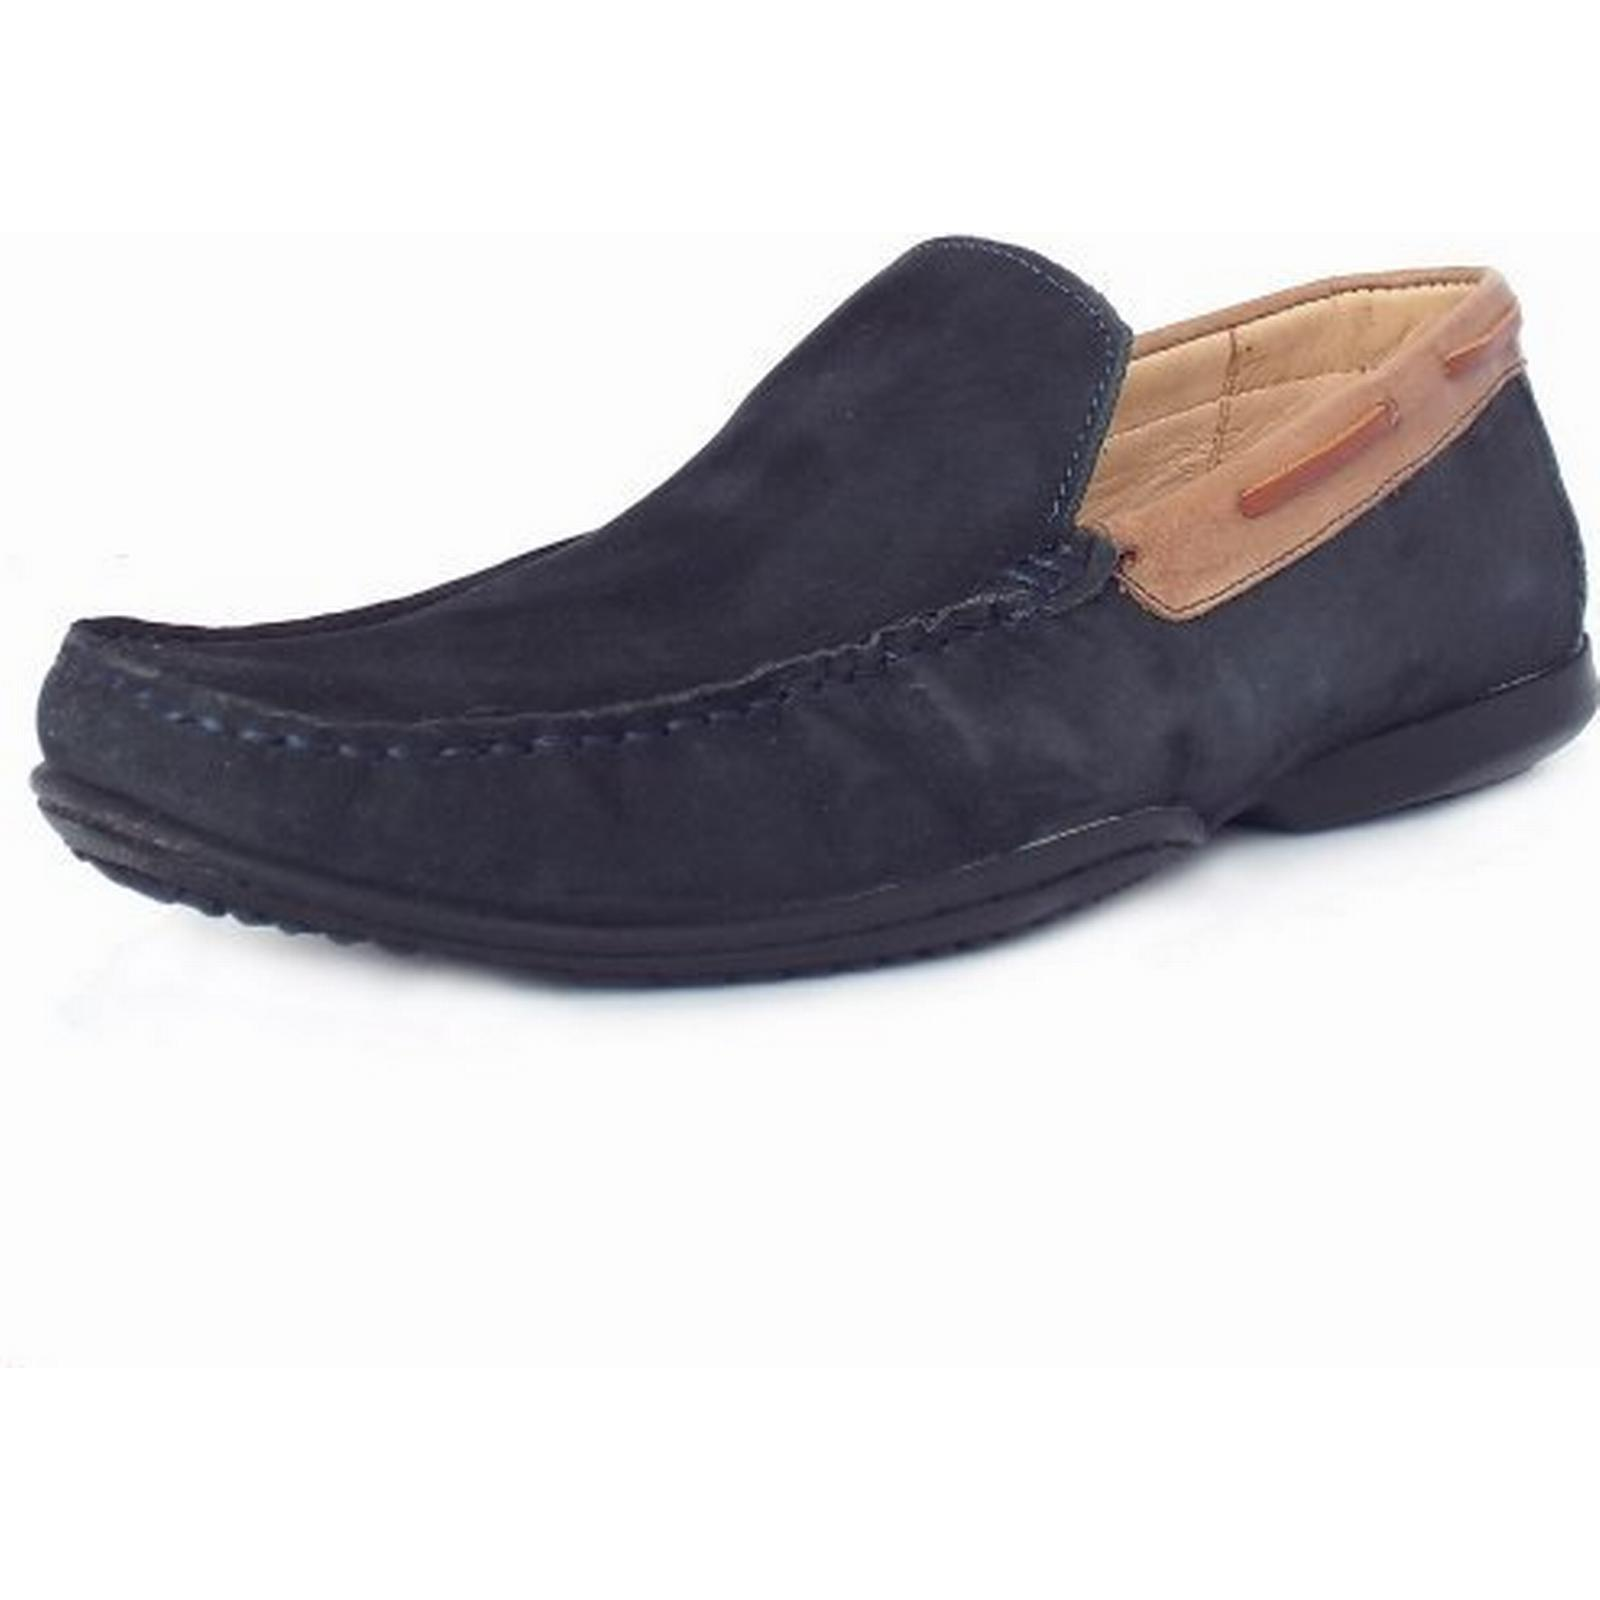 Anatomic&Co ITATIBA ANATOMIC MENS SHOES Size: 40, Colour: NAVY SUEDE SUEDE NAVY fc8f40